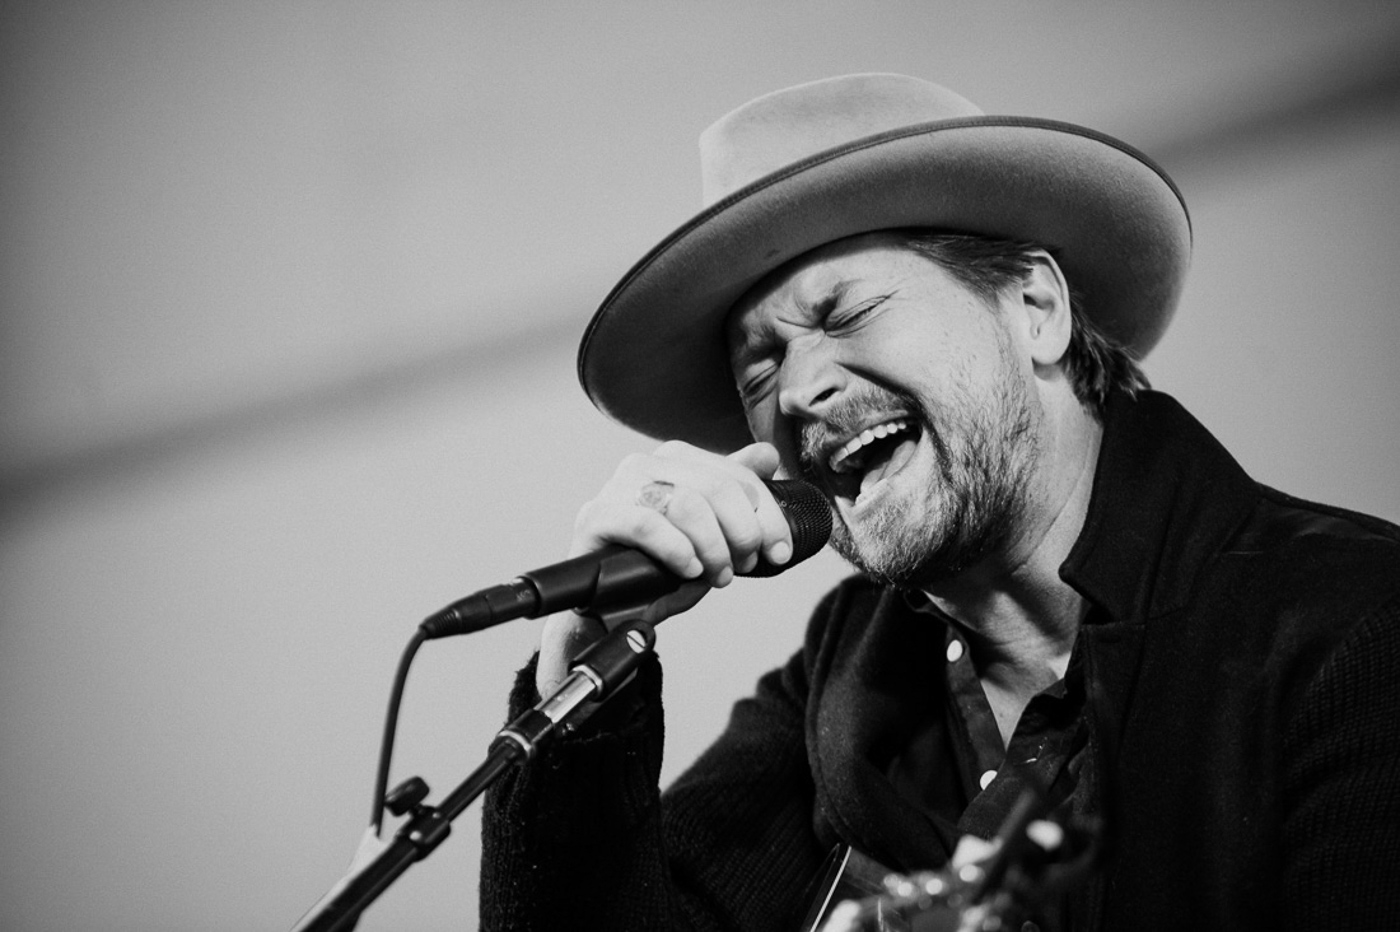 Lead singer of NEEDTOBREATHE, Bear Rinehart, belts it out at Yountville Live